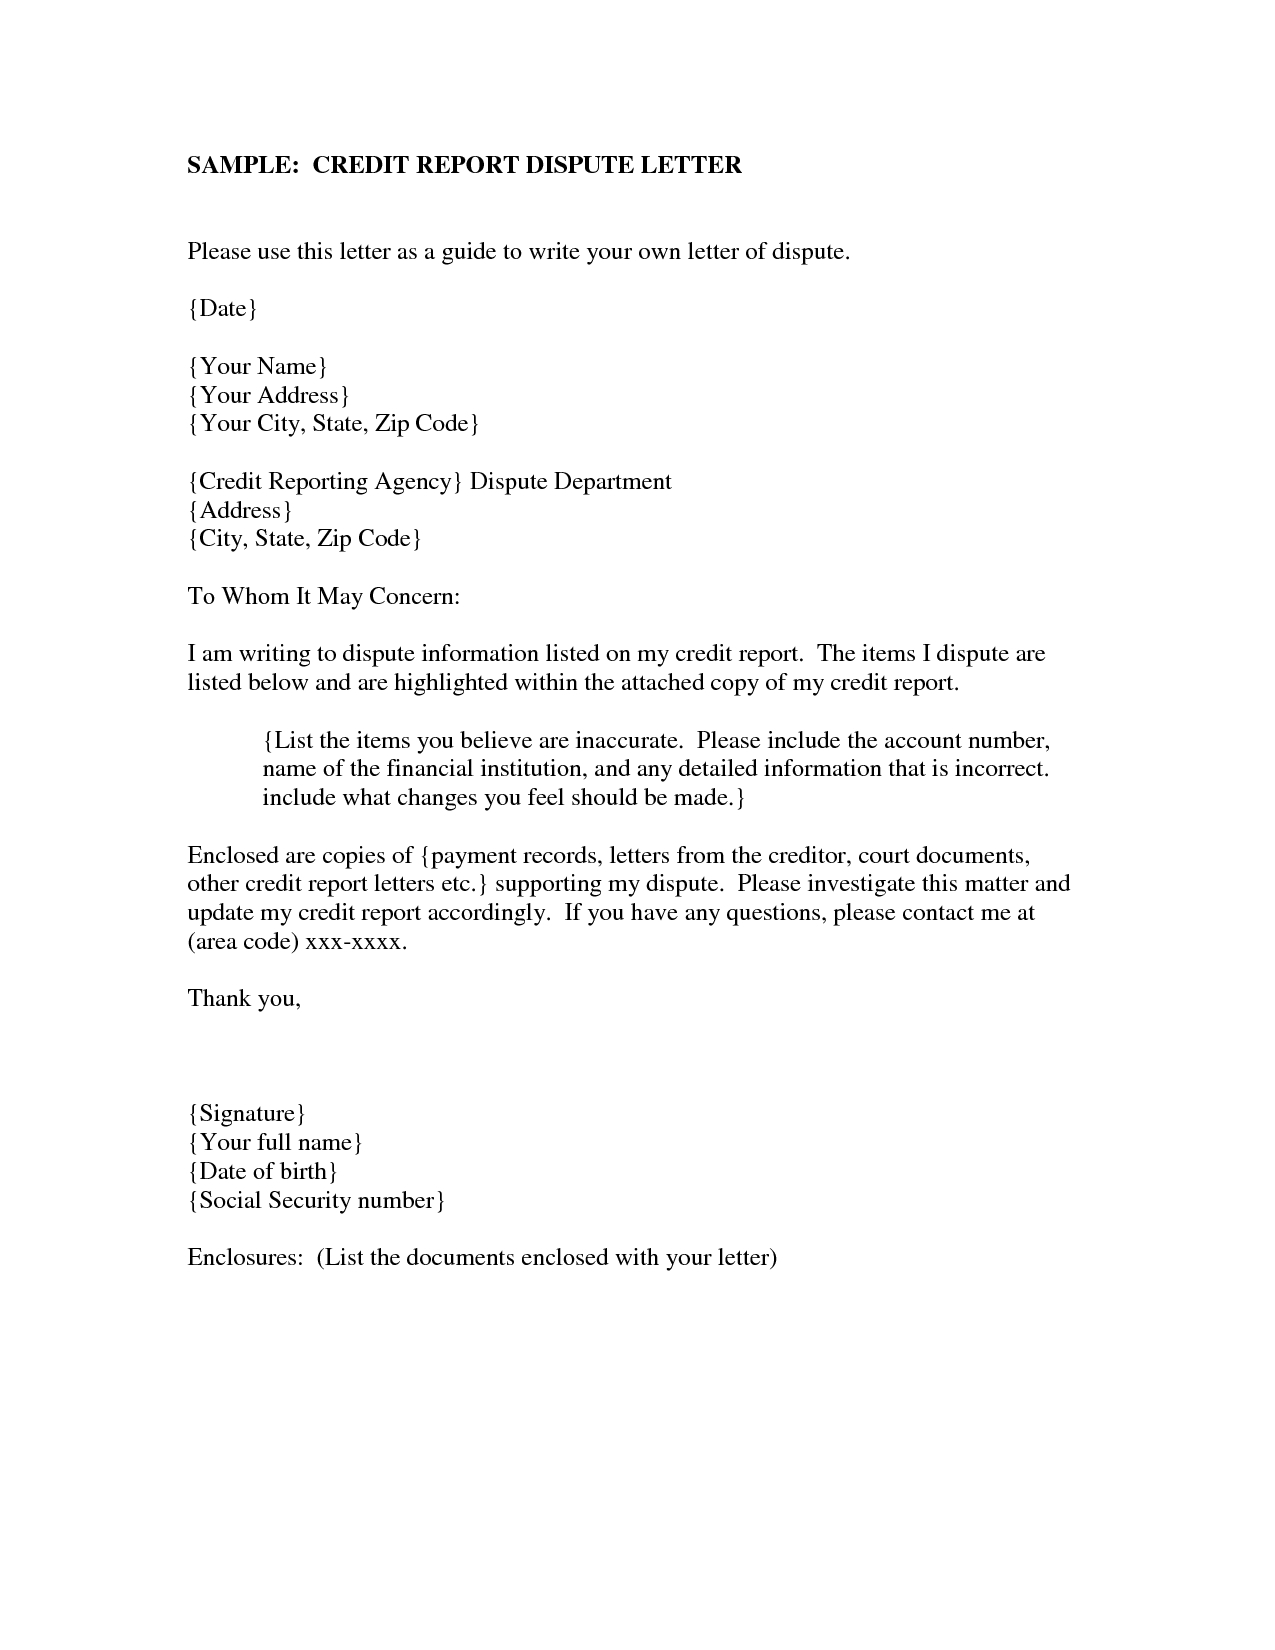 Experian Dispute Letter Template - How to Write Credit Dispute Letter Image Collections Letter format